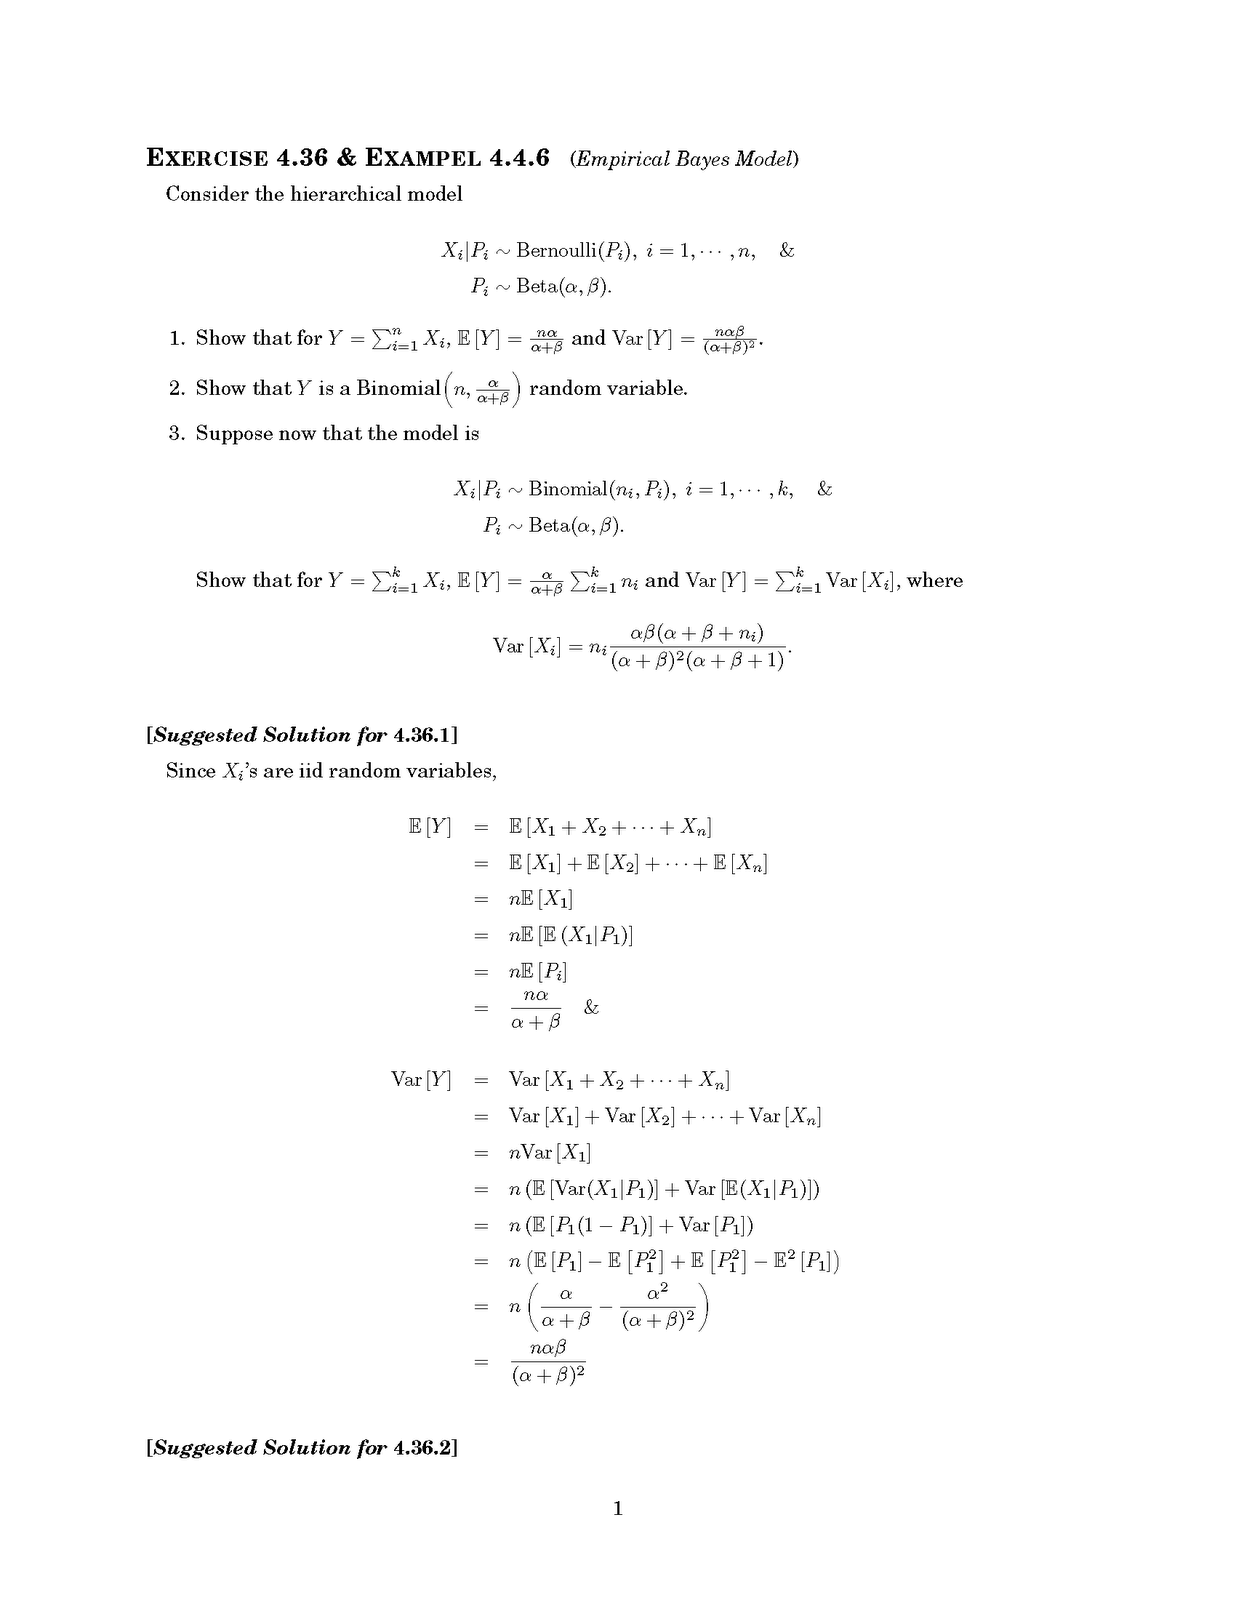 [Statistical Inference - 2nd Edition by Casella and Berger] A suggested  solution for E.4.36